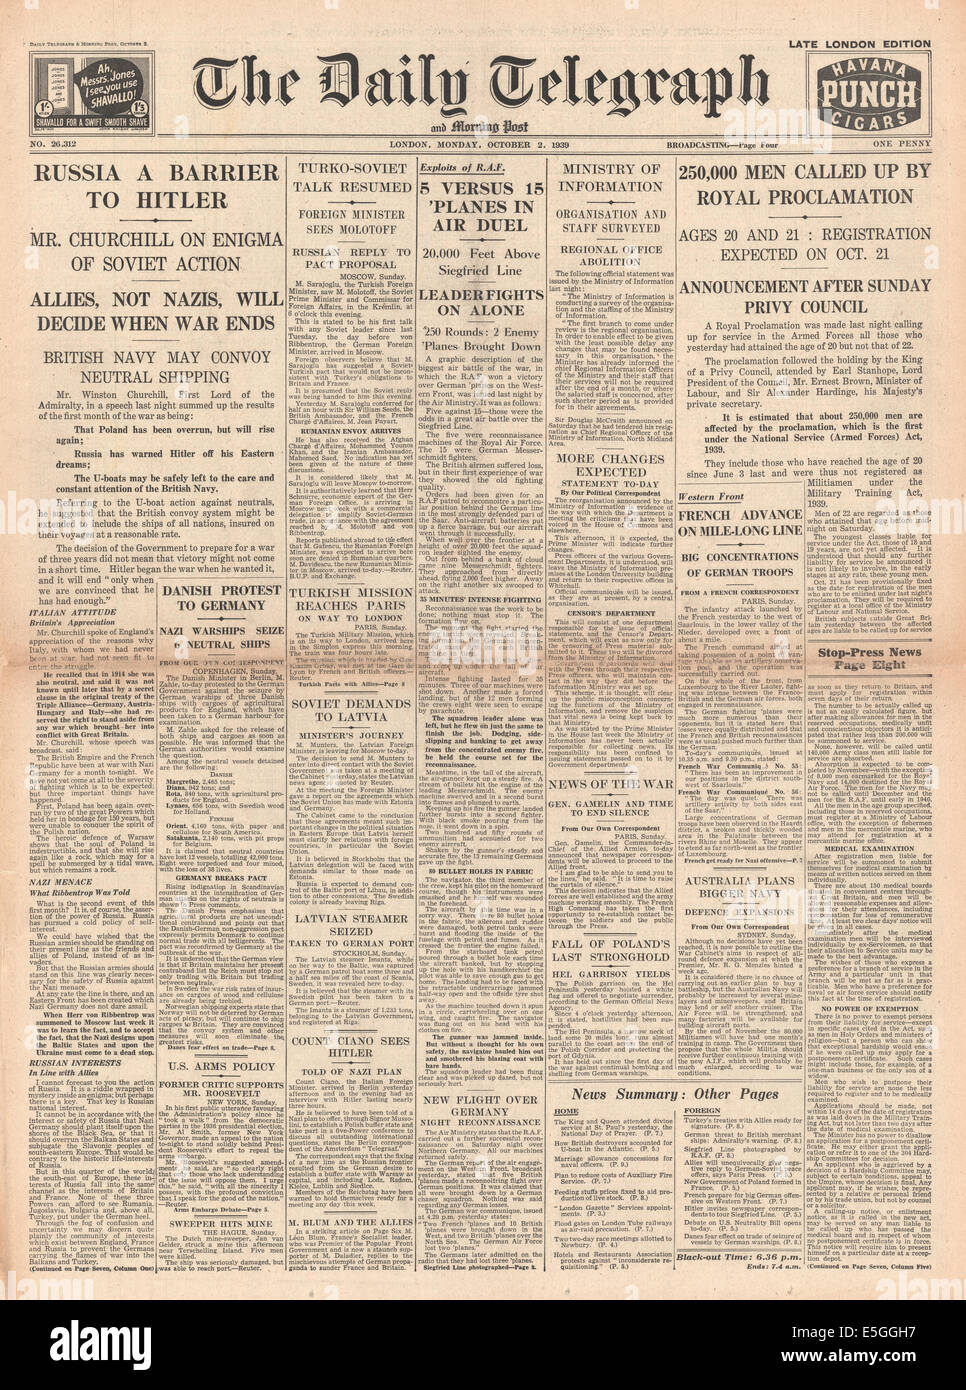 1939 Daily Telegraph front page reporting military call-up for 21 year-olds by royal proclamation - Stock Image